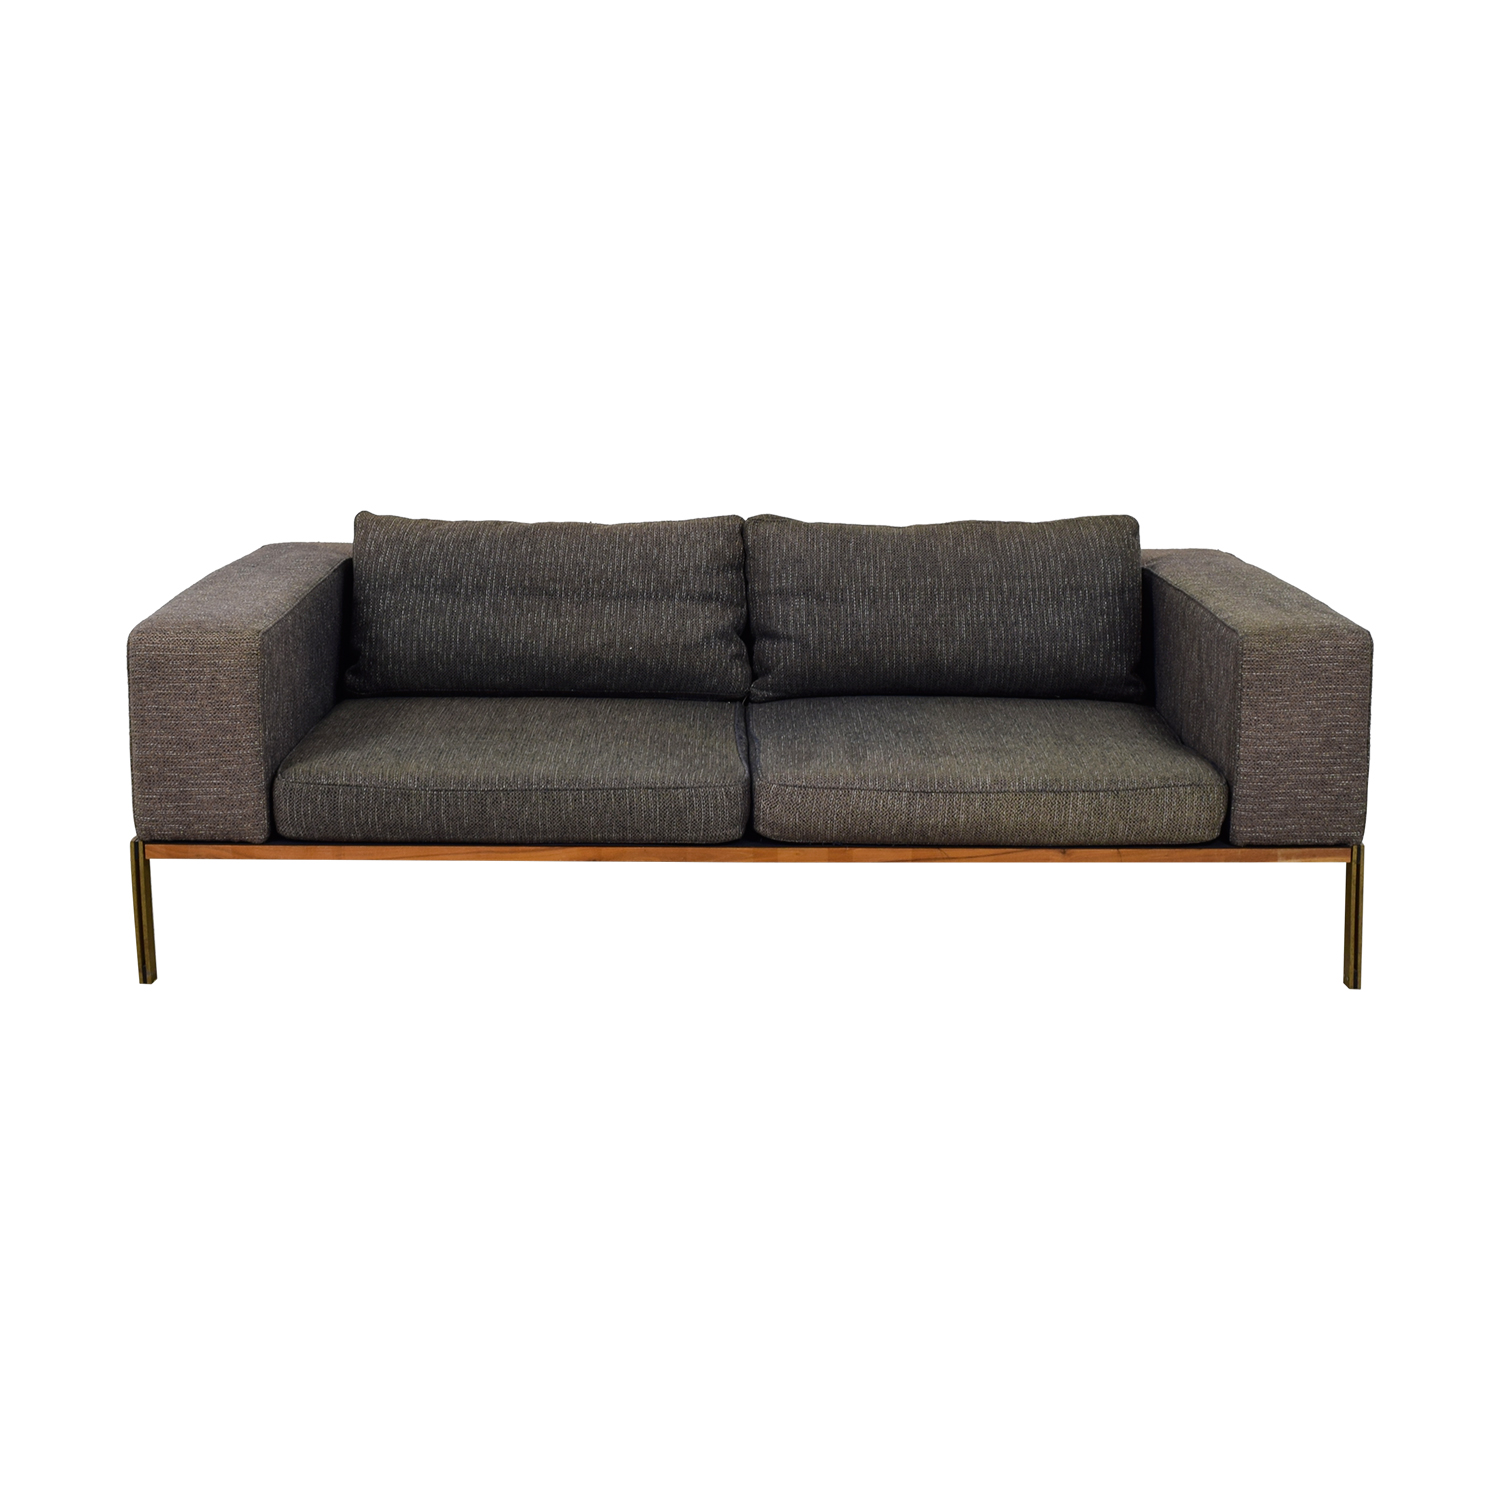 Organic Modernism Grey Two-Cushion Sofa / Classic Sofas